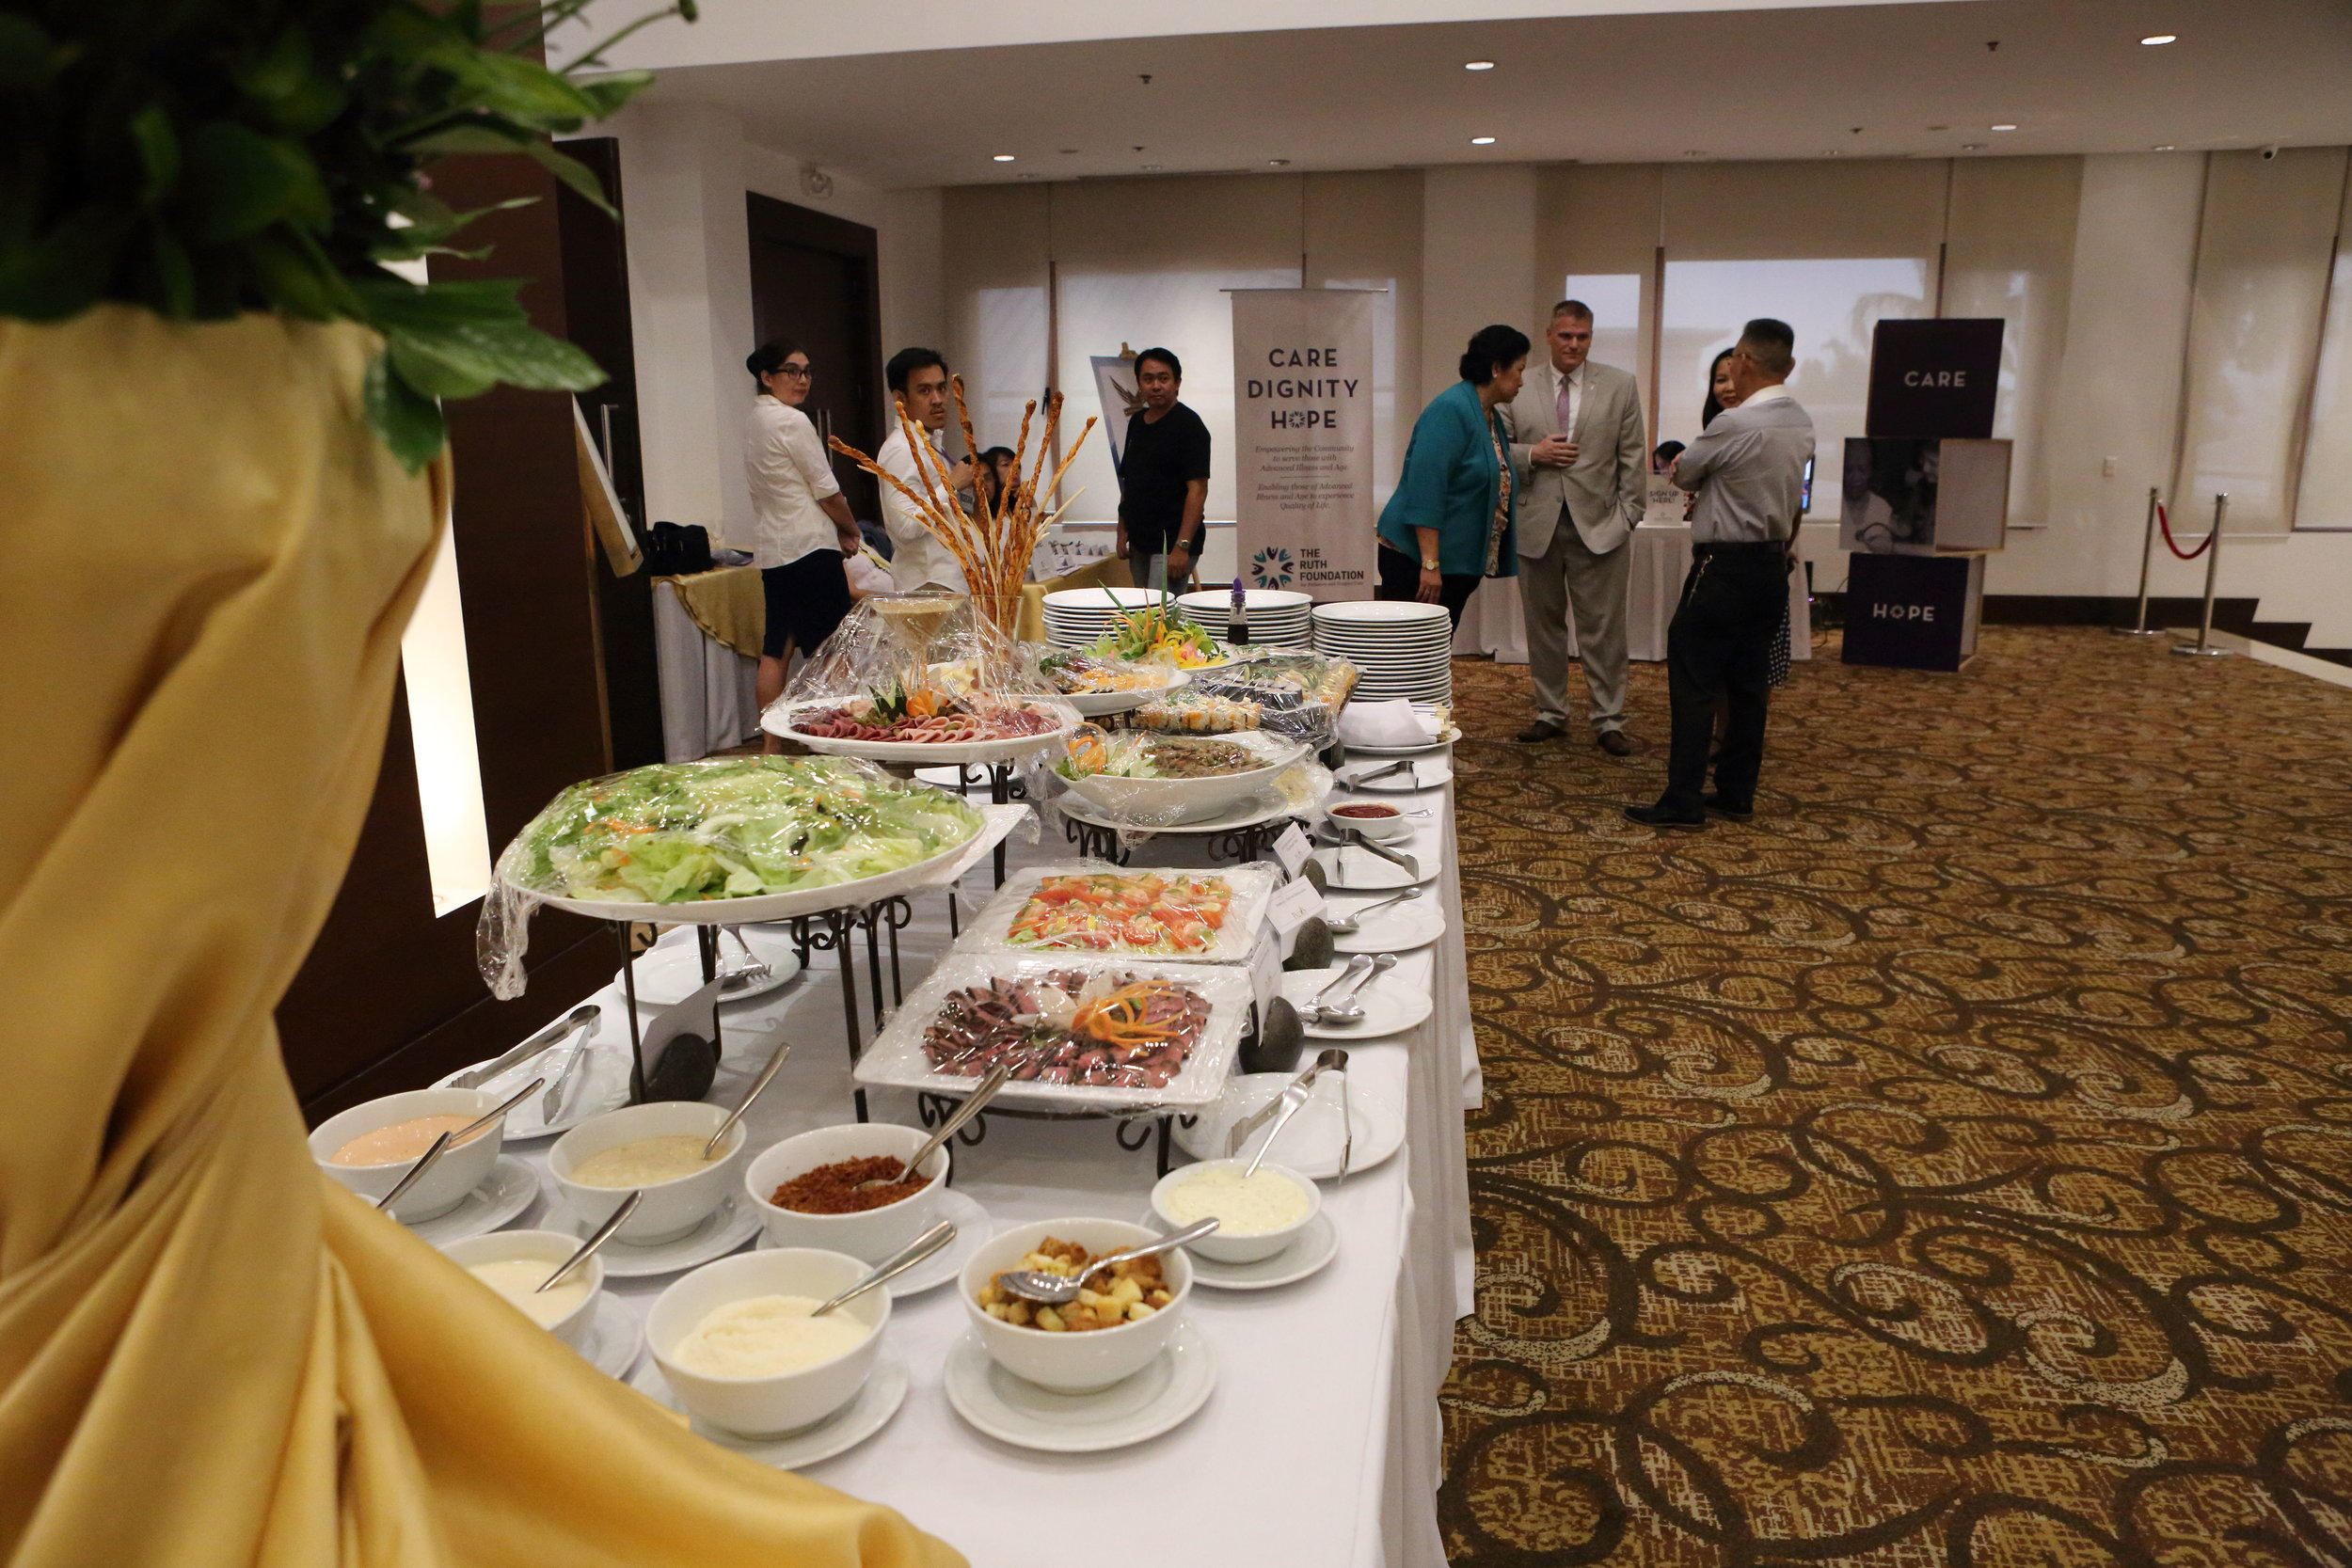 A buffet line was set-up outside, along with information on each of the foundations.